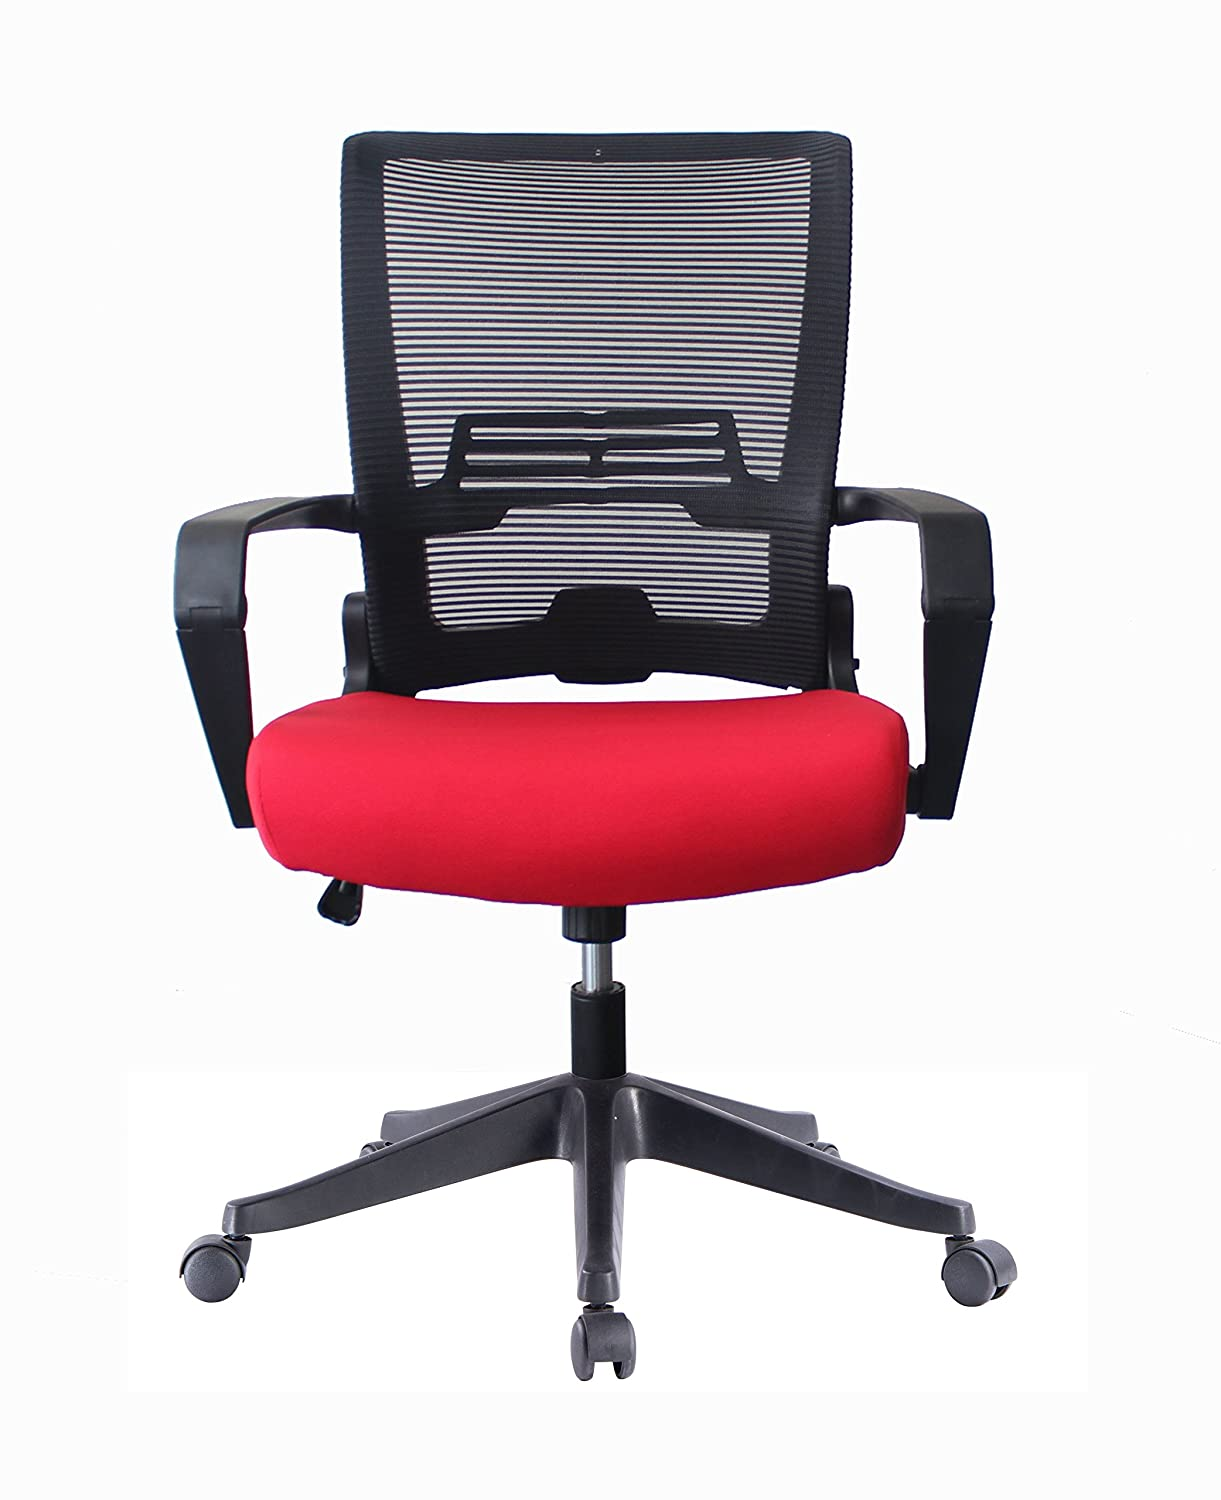 ImpecGear Ergonomic Office Chair High Back Mesh with Adjustable Lumbar Support Headrest and Folded Mesh Back,No Tools Need for Install Custom Color Seat Fabric-RED